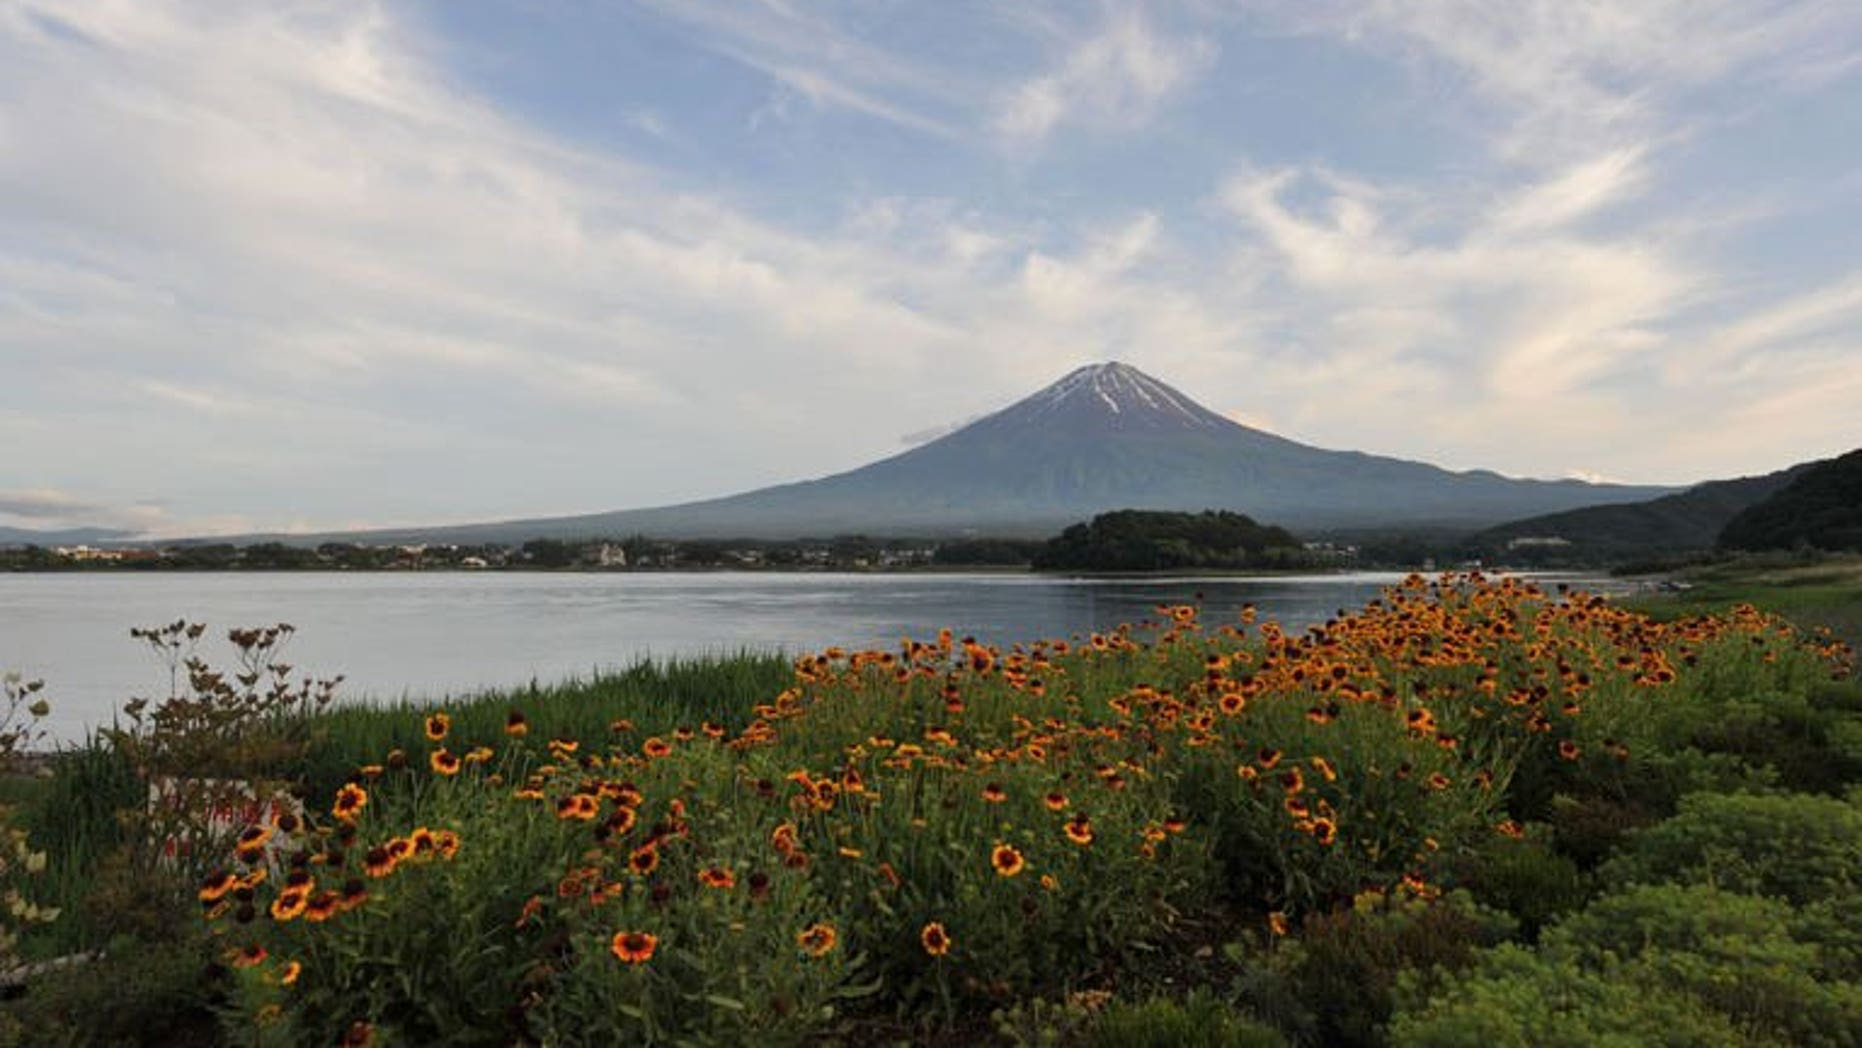 This picture taken on June 16, 2013 shows Mount Fuji, the highest mountain in Japan at 3,776 metres (12,460 feet). Residents in towns around Mount Fuji celebrate after UNESCO grants World Heritage status to the volcano.